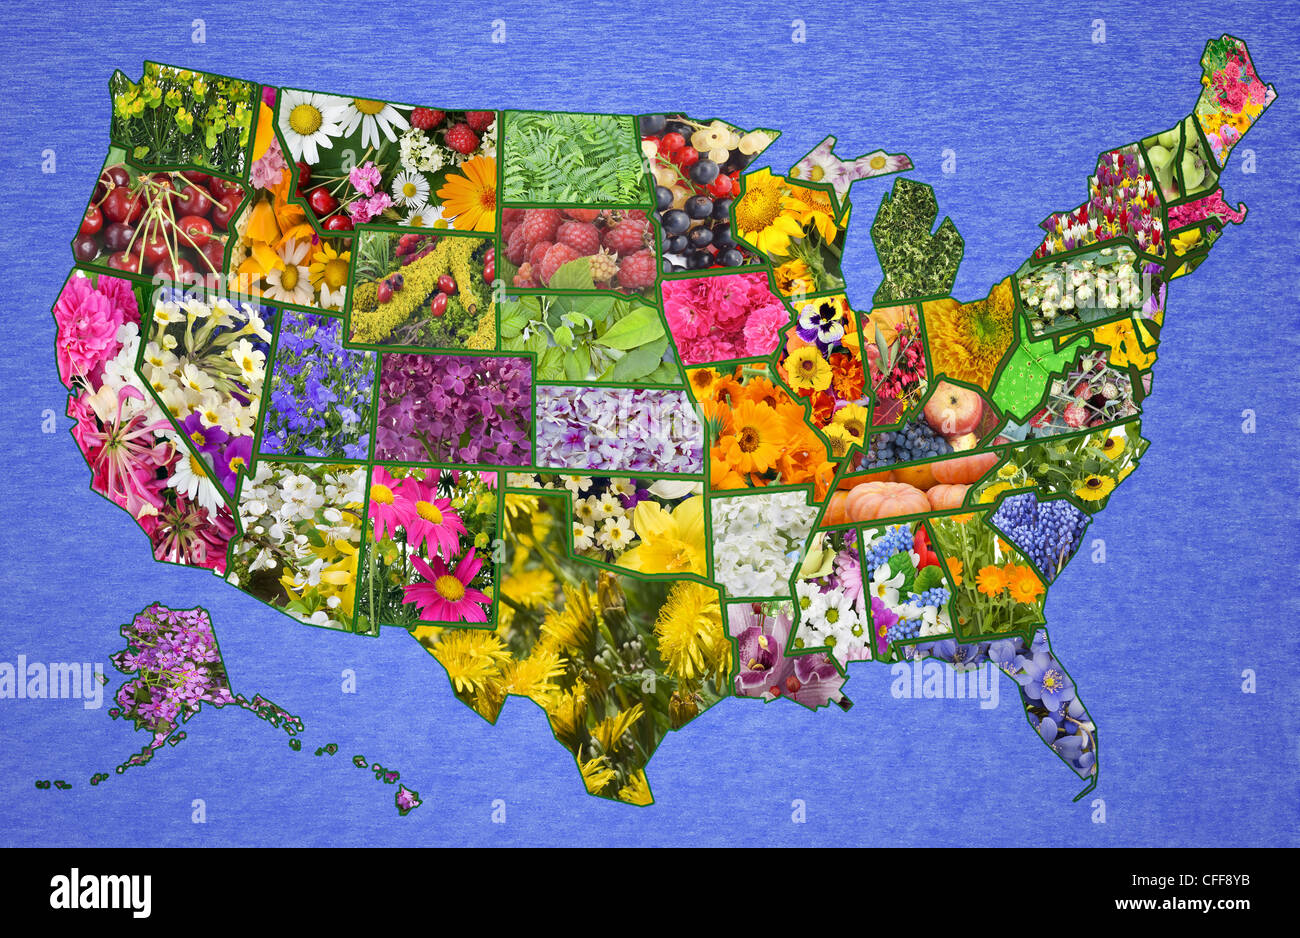 USA American high resolution map from flowers and plants ... on map slide show, map travel, map facebook covers, map creator, map pencil, map in india, map gift tags, map in europe, map still life, map de france, map making, map of college football teams, map major rivers in australia, map with mountains, map with states, map distance between cities, map of dallas texas and surrounding areas, map vintage, map in spanish, map history,